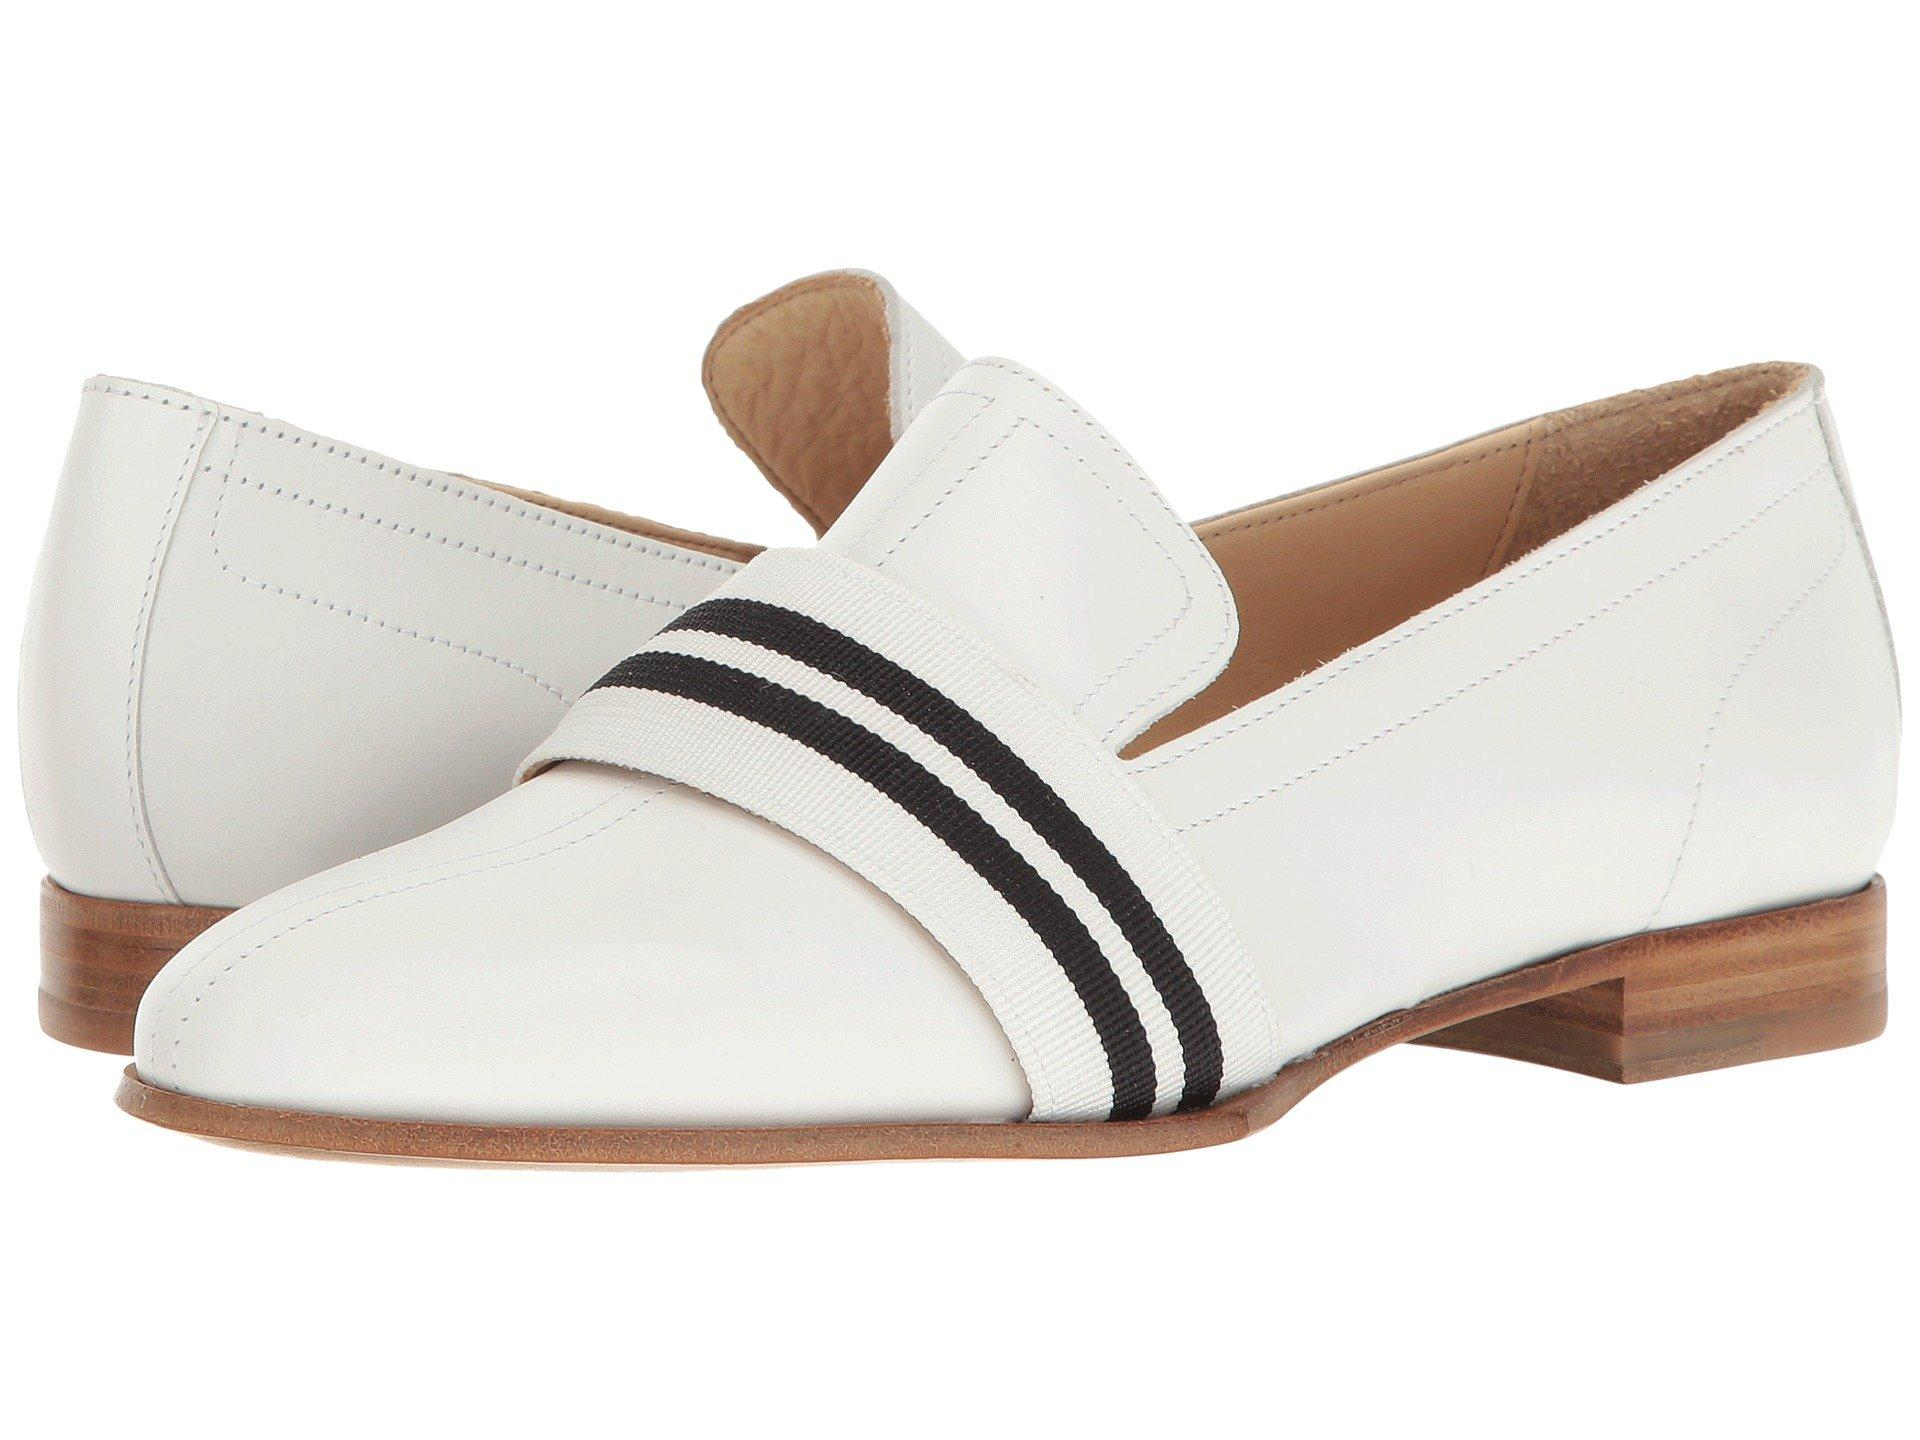 7bfe5a40a9 Rag & Bone Amber Grosgrain-Trimmed Leather Slippers In White | ModeSens